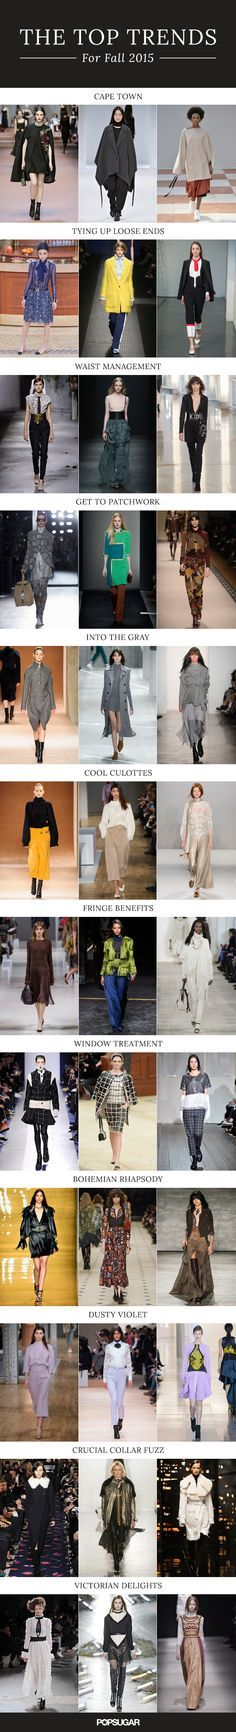 Get ready for next season now with the top fashion trends for fall 2015!